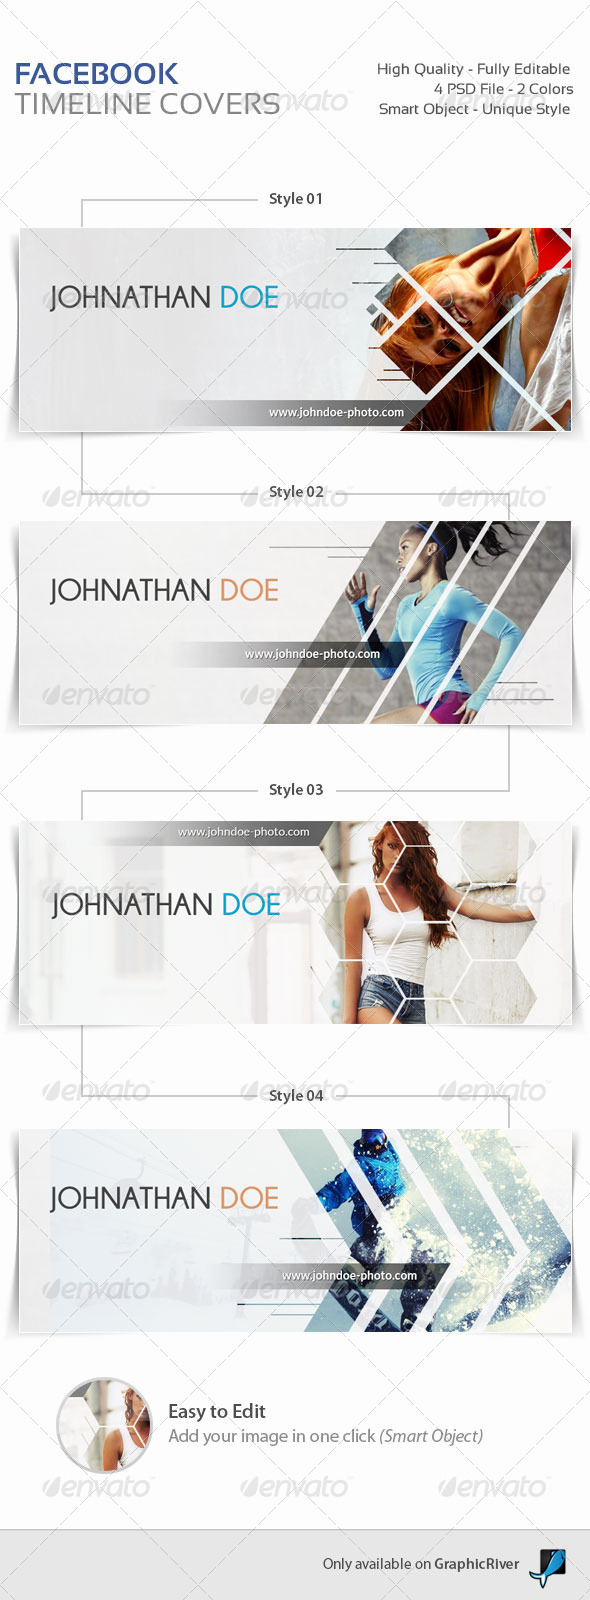 GraphicRiver 4 Facebook Timeline Covers 8436946